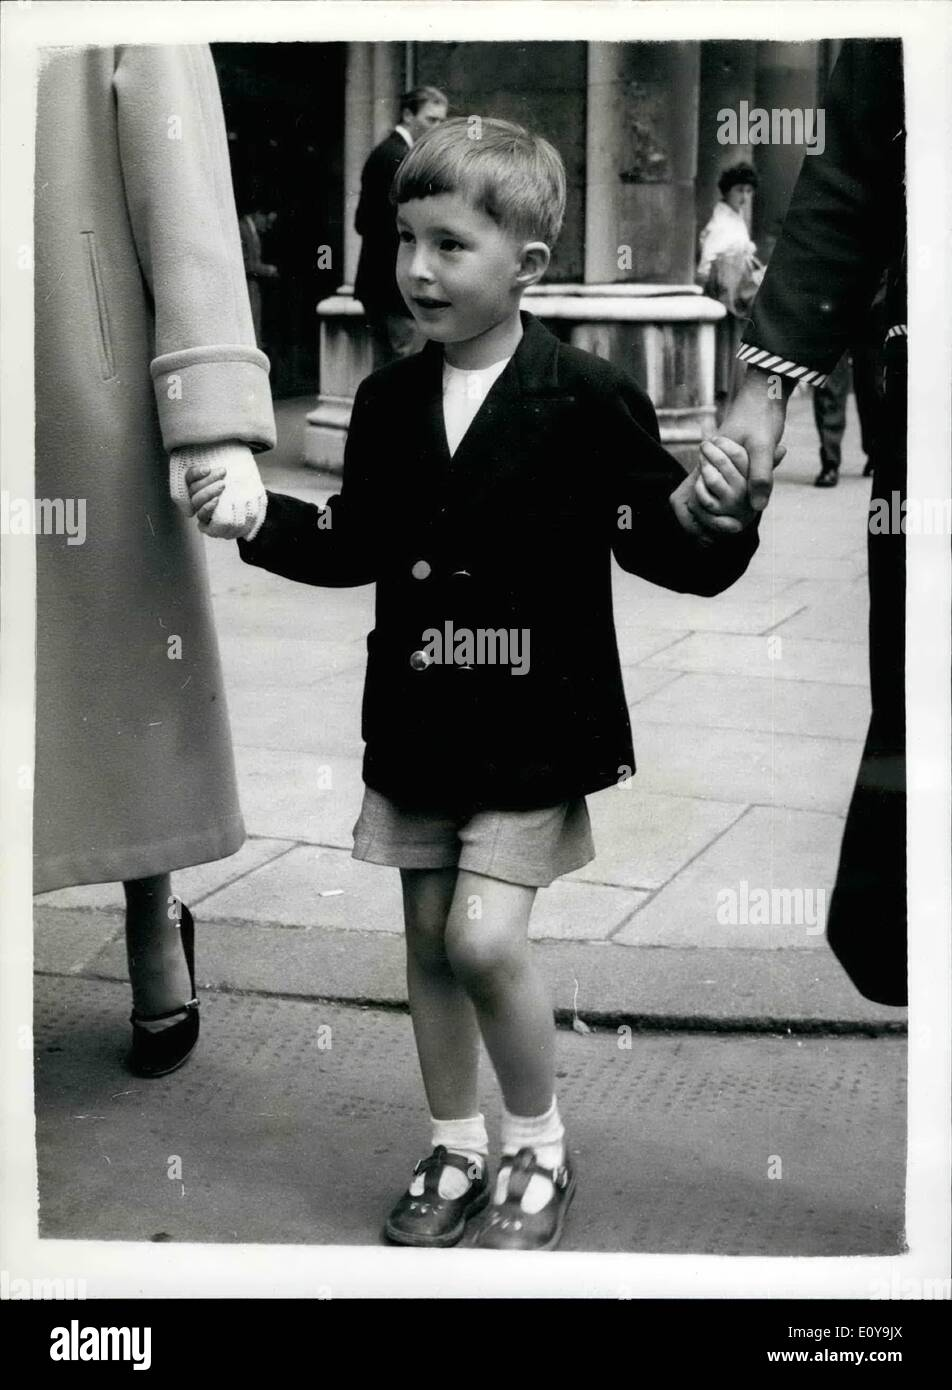 Jun. 06, 1969 - Boy aged five sues father - gets £6,500... Injured in accident when only ten weeks old. Five year old John Gearing was yesterday awarded £6,500 damages against his father - for brain injuries he received in a car crash when he was ten weeks old. the action was brought through his mother Mrs. Margaret Brodie, now remarried following dissolution of her marriage to John's father, The father- Mr. William Sidney Gearing denied negligence and blamed the other motorist involved in the crash - Stock Image